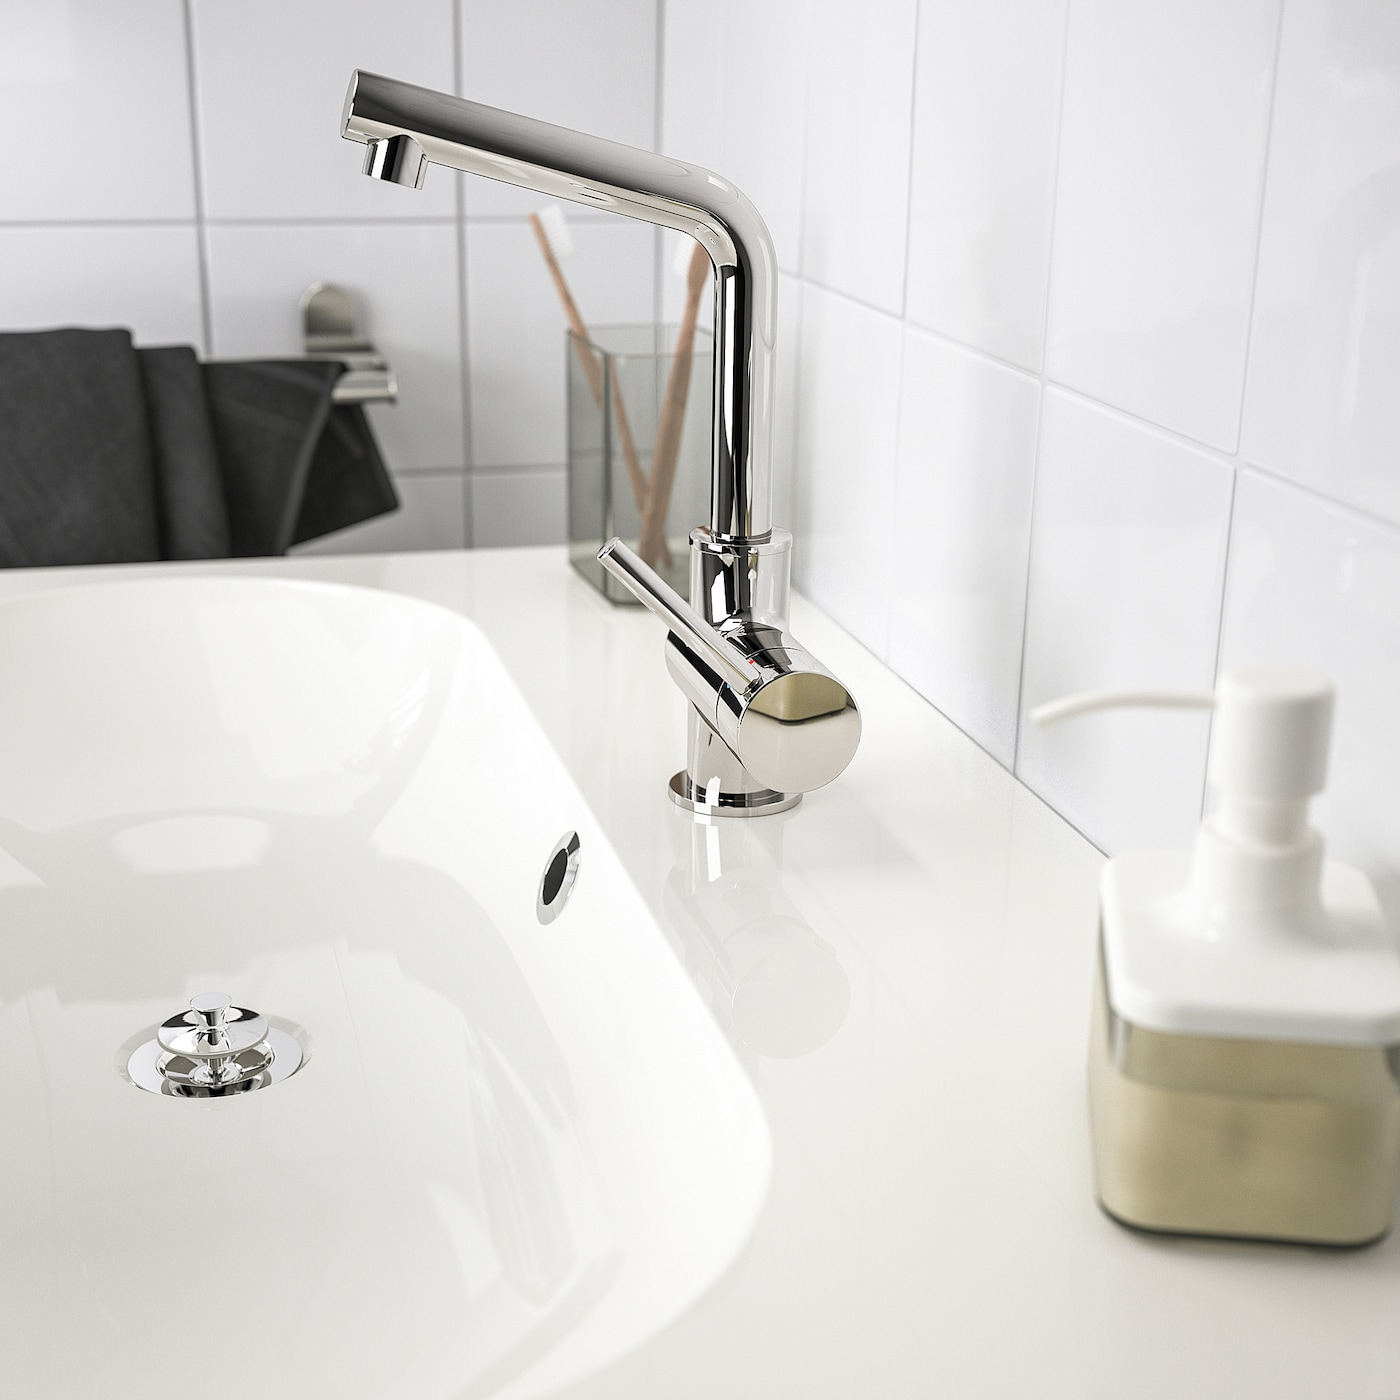 LUNDSKÄR Bath faucet with strainer, chrome plated